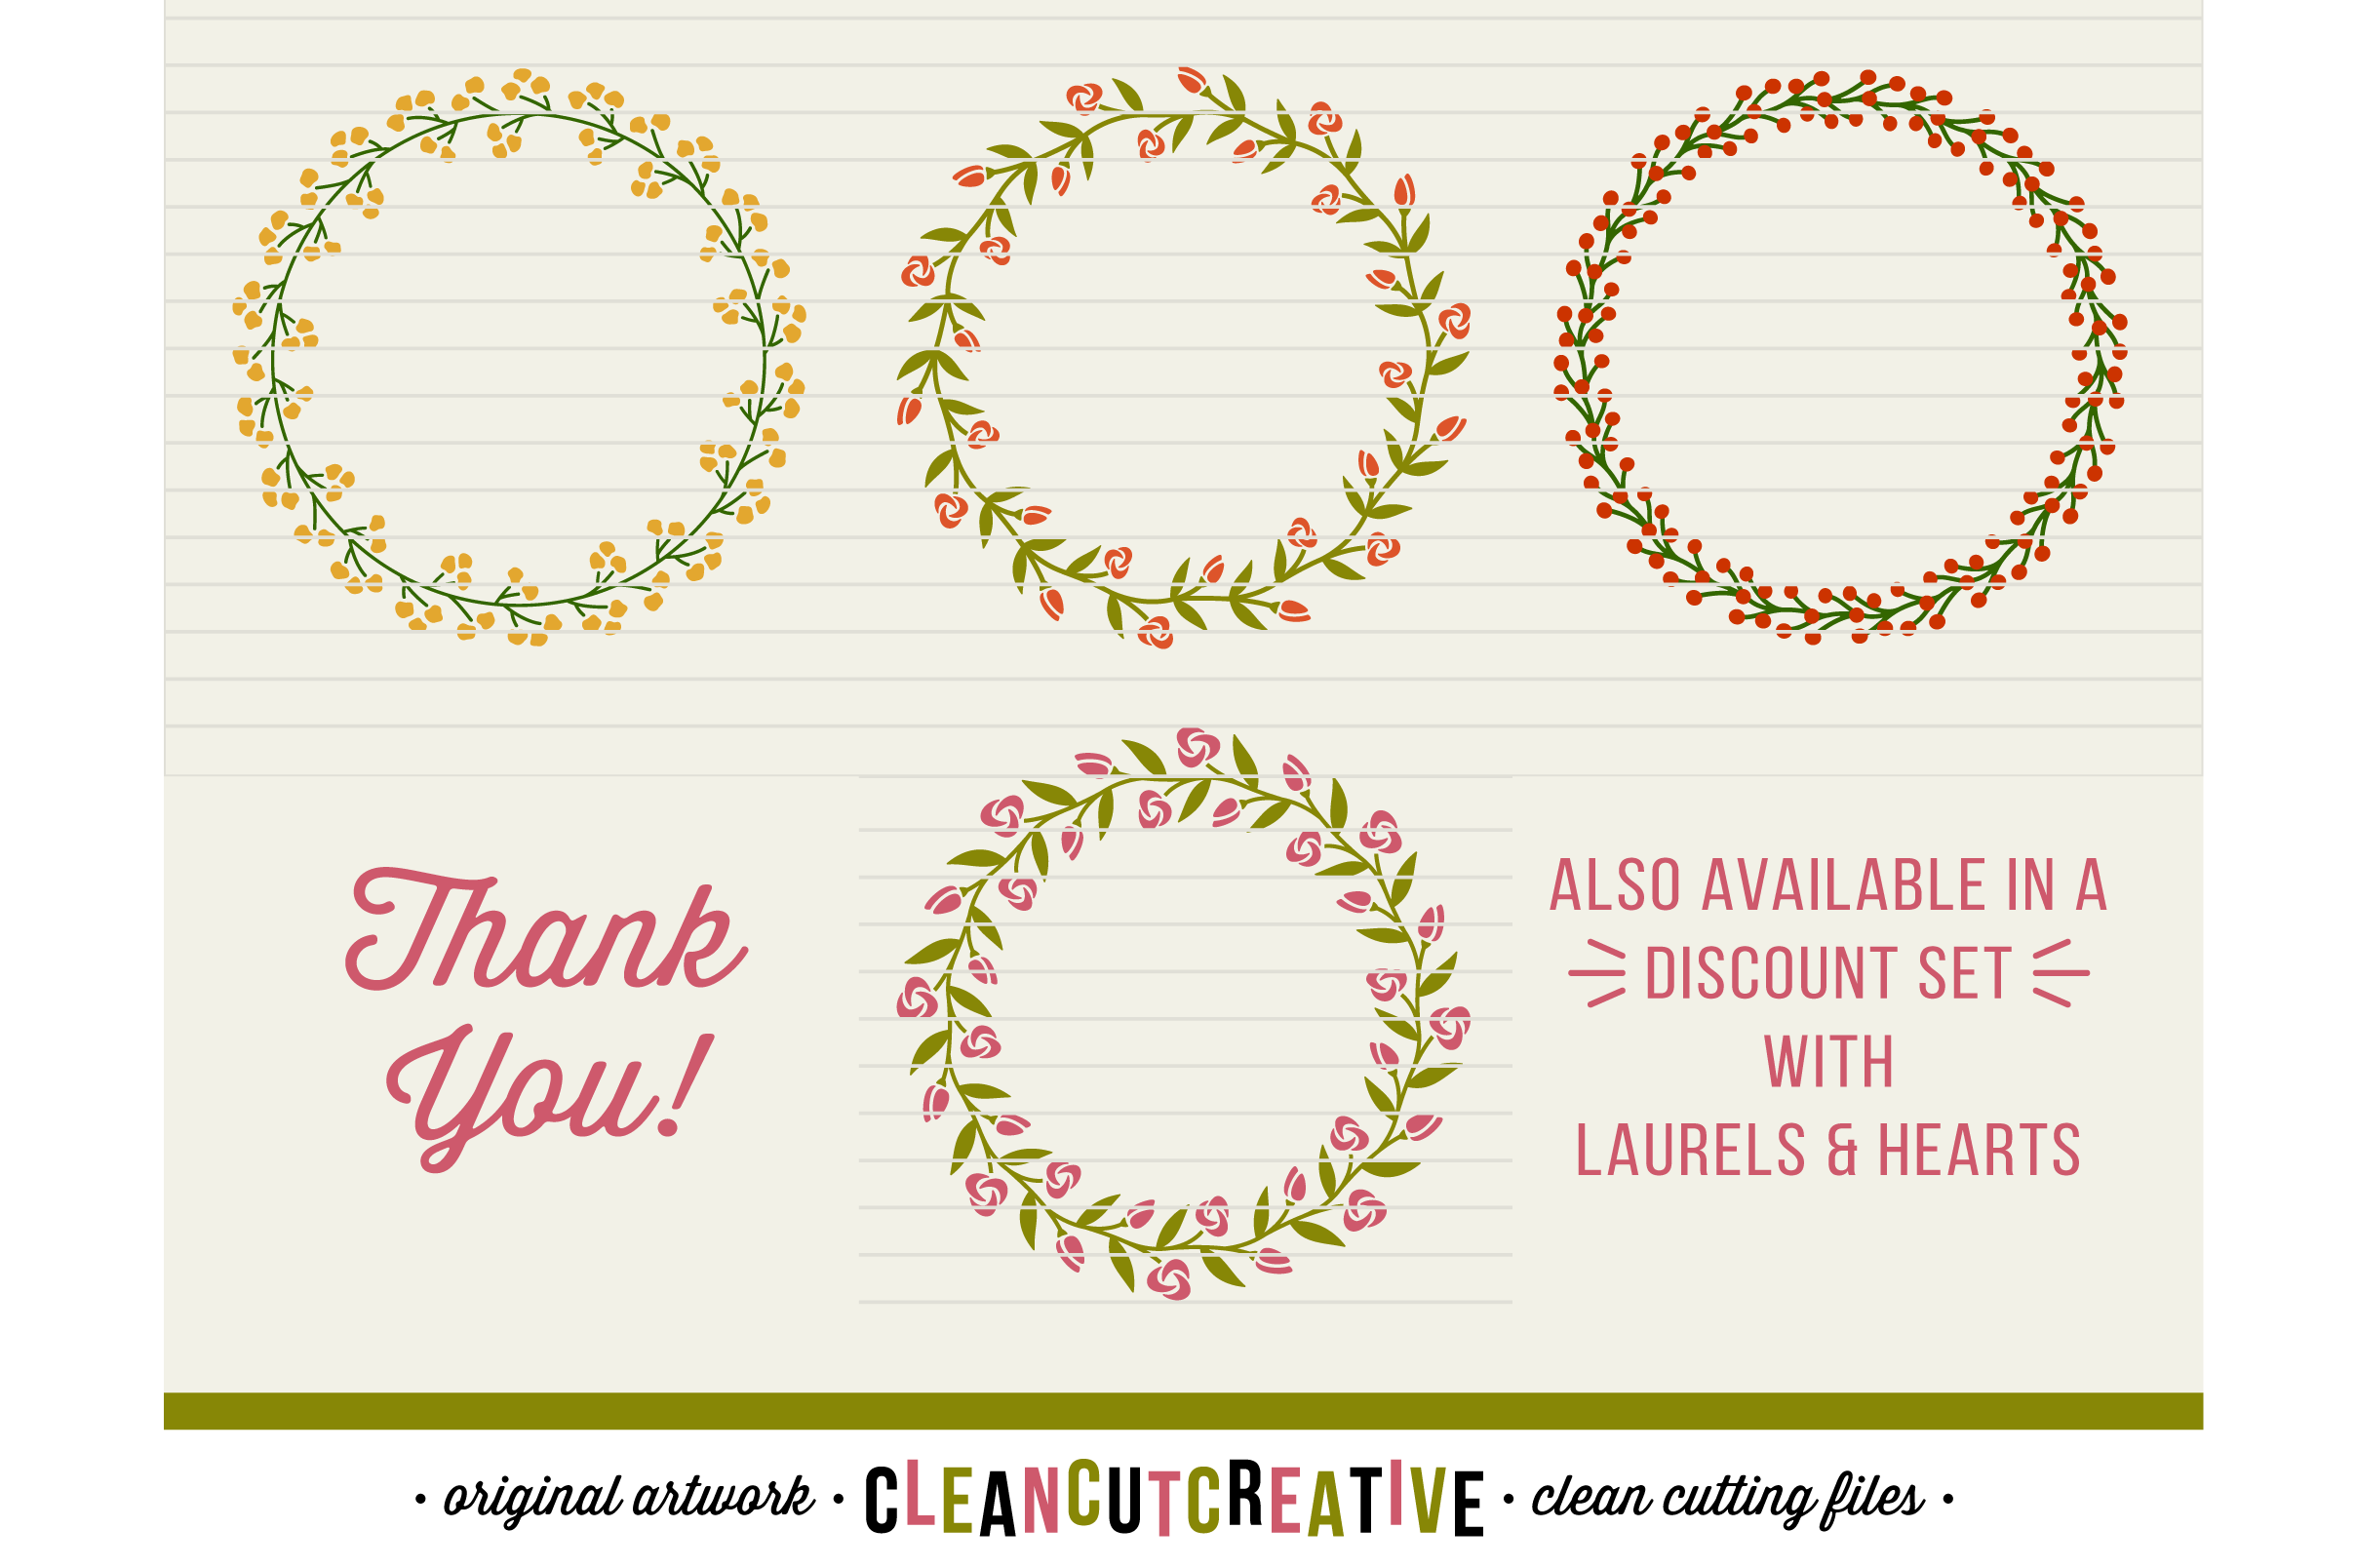 15 svg FLORAL WREATHS floral leaf circleframes - SVG DXF EPS PNG - for Cricut and Silhouette Cameo - clean cutting digital files example image 4